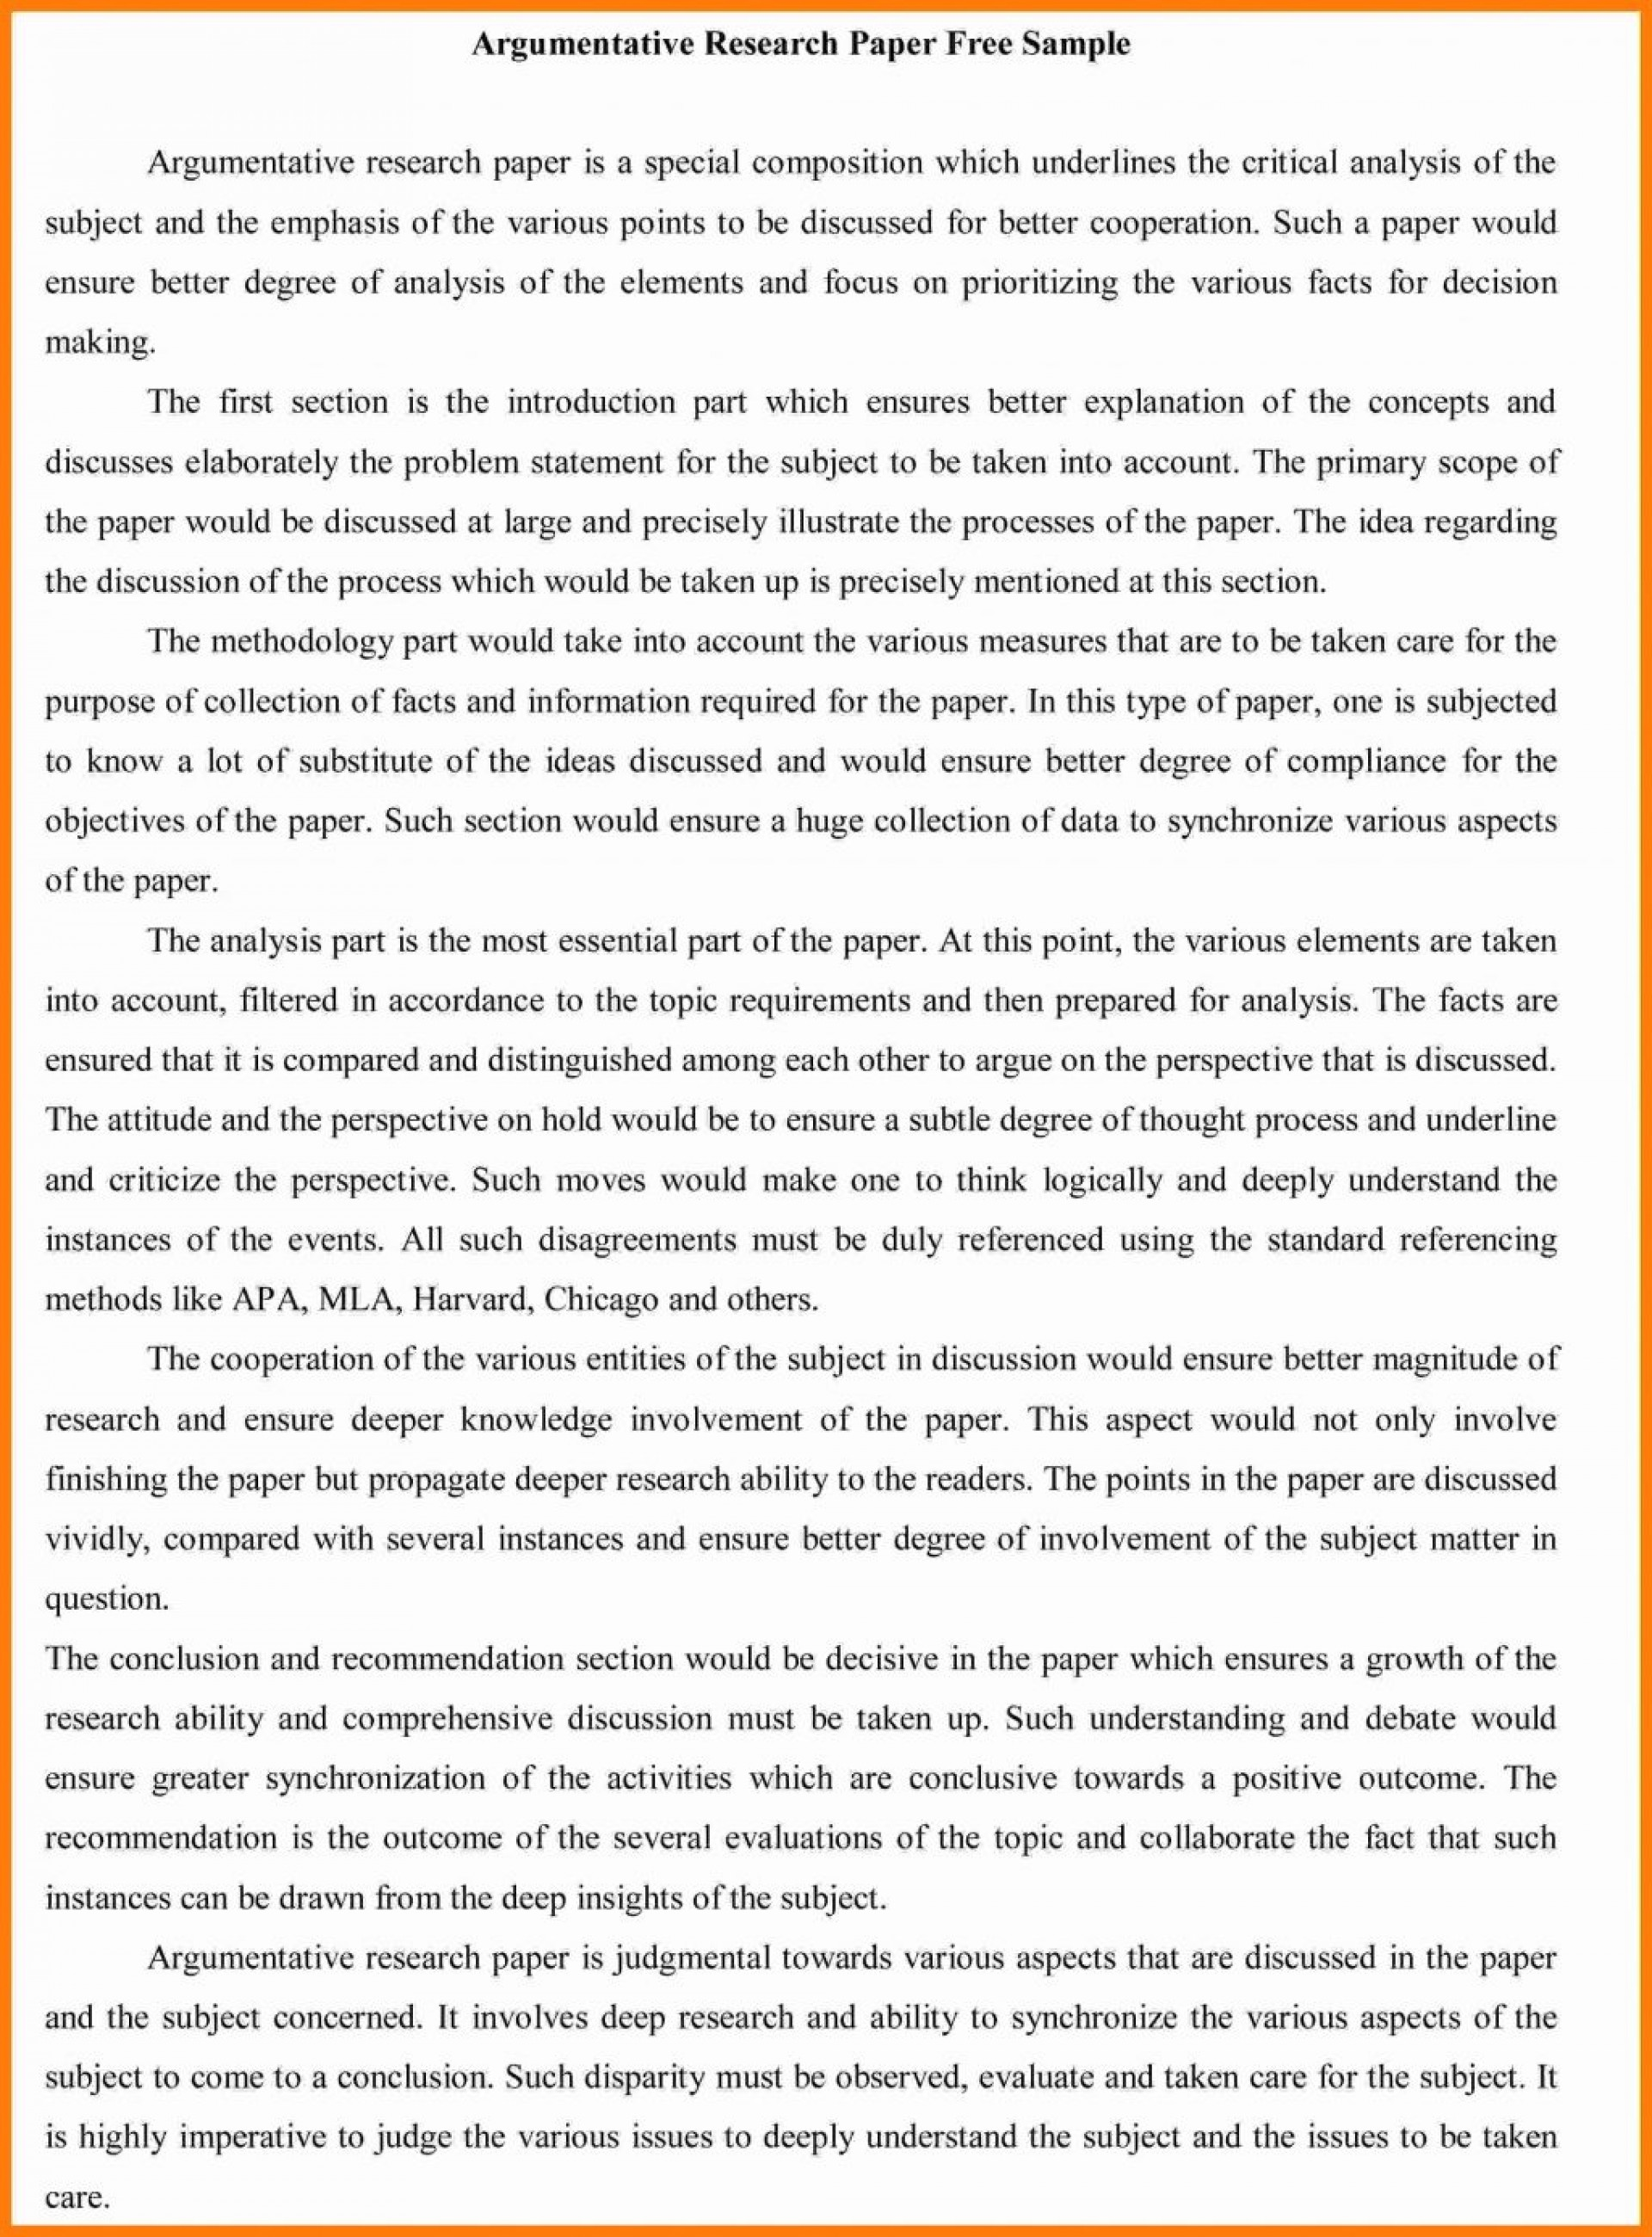 011 Research Paper Essays Uncategorized Aids Academic Writing Illegal Immigration Topics20 1024x1387 Top Career 1920